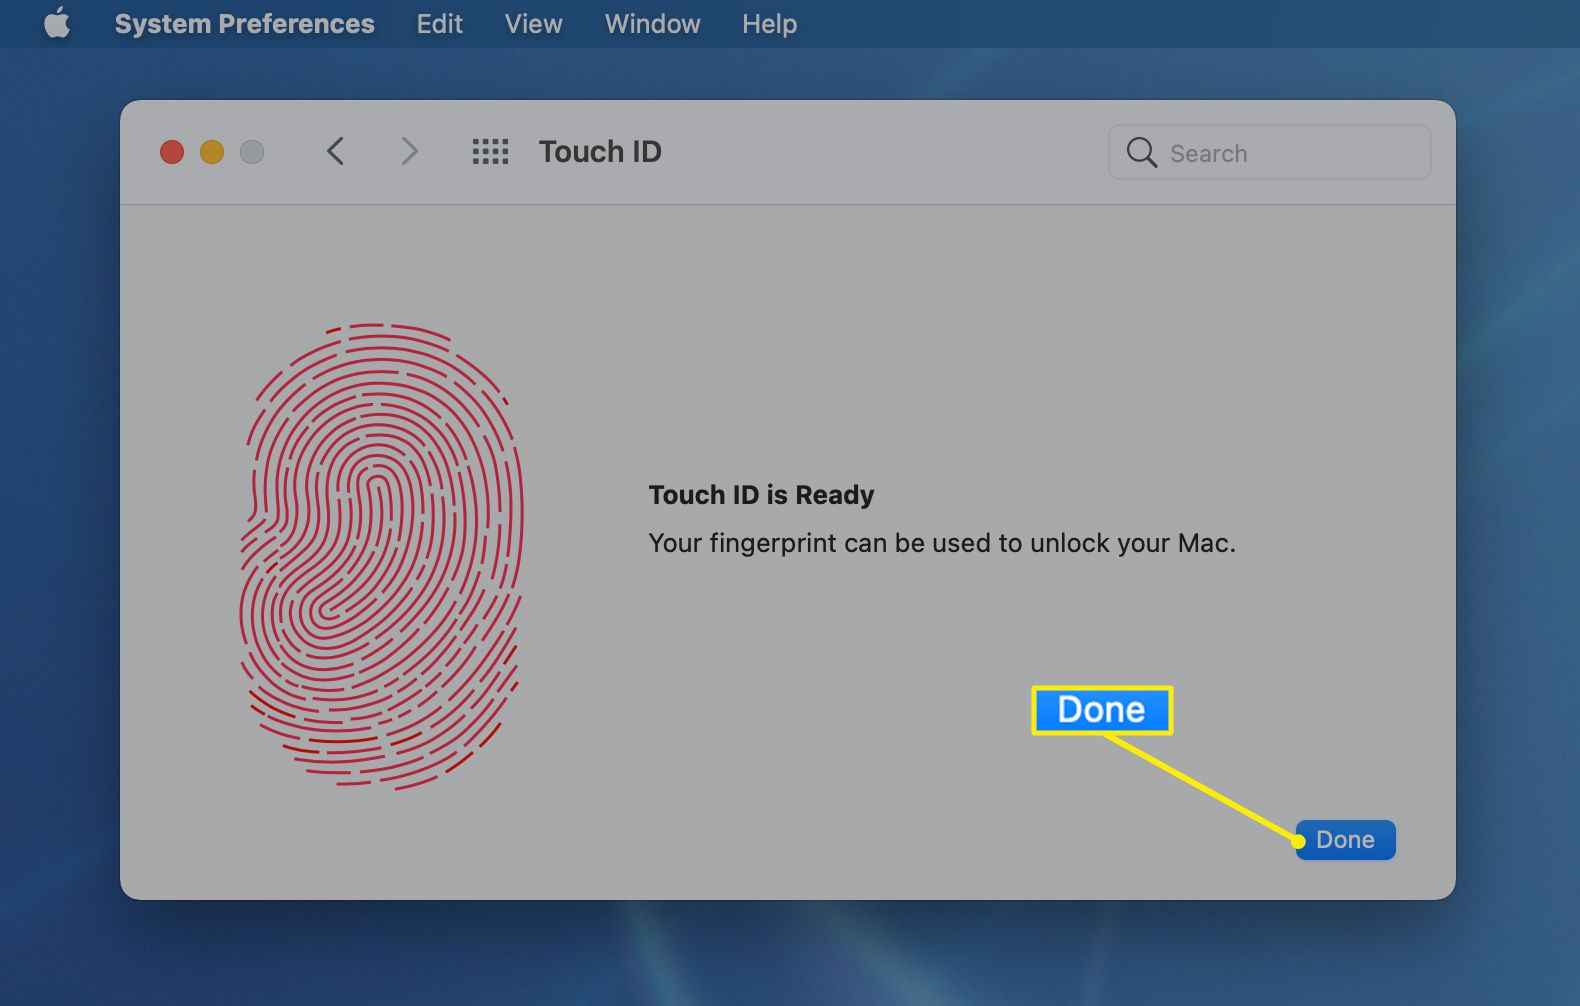 Done highlighted on a completed Touch ID fingerprint screen